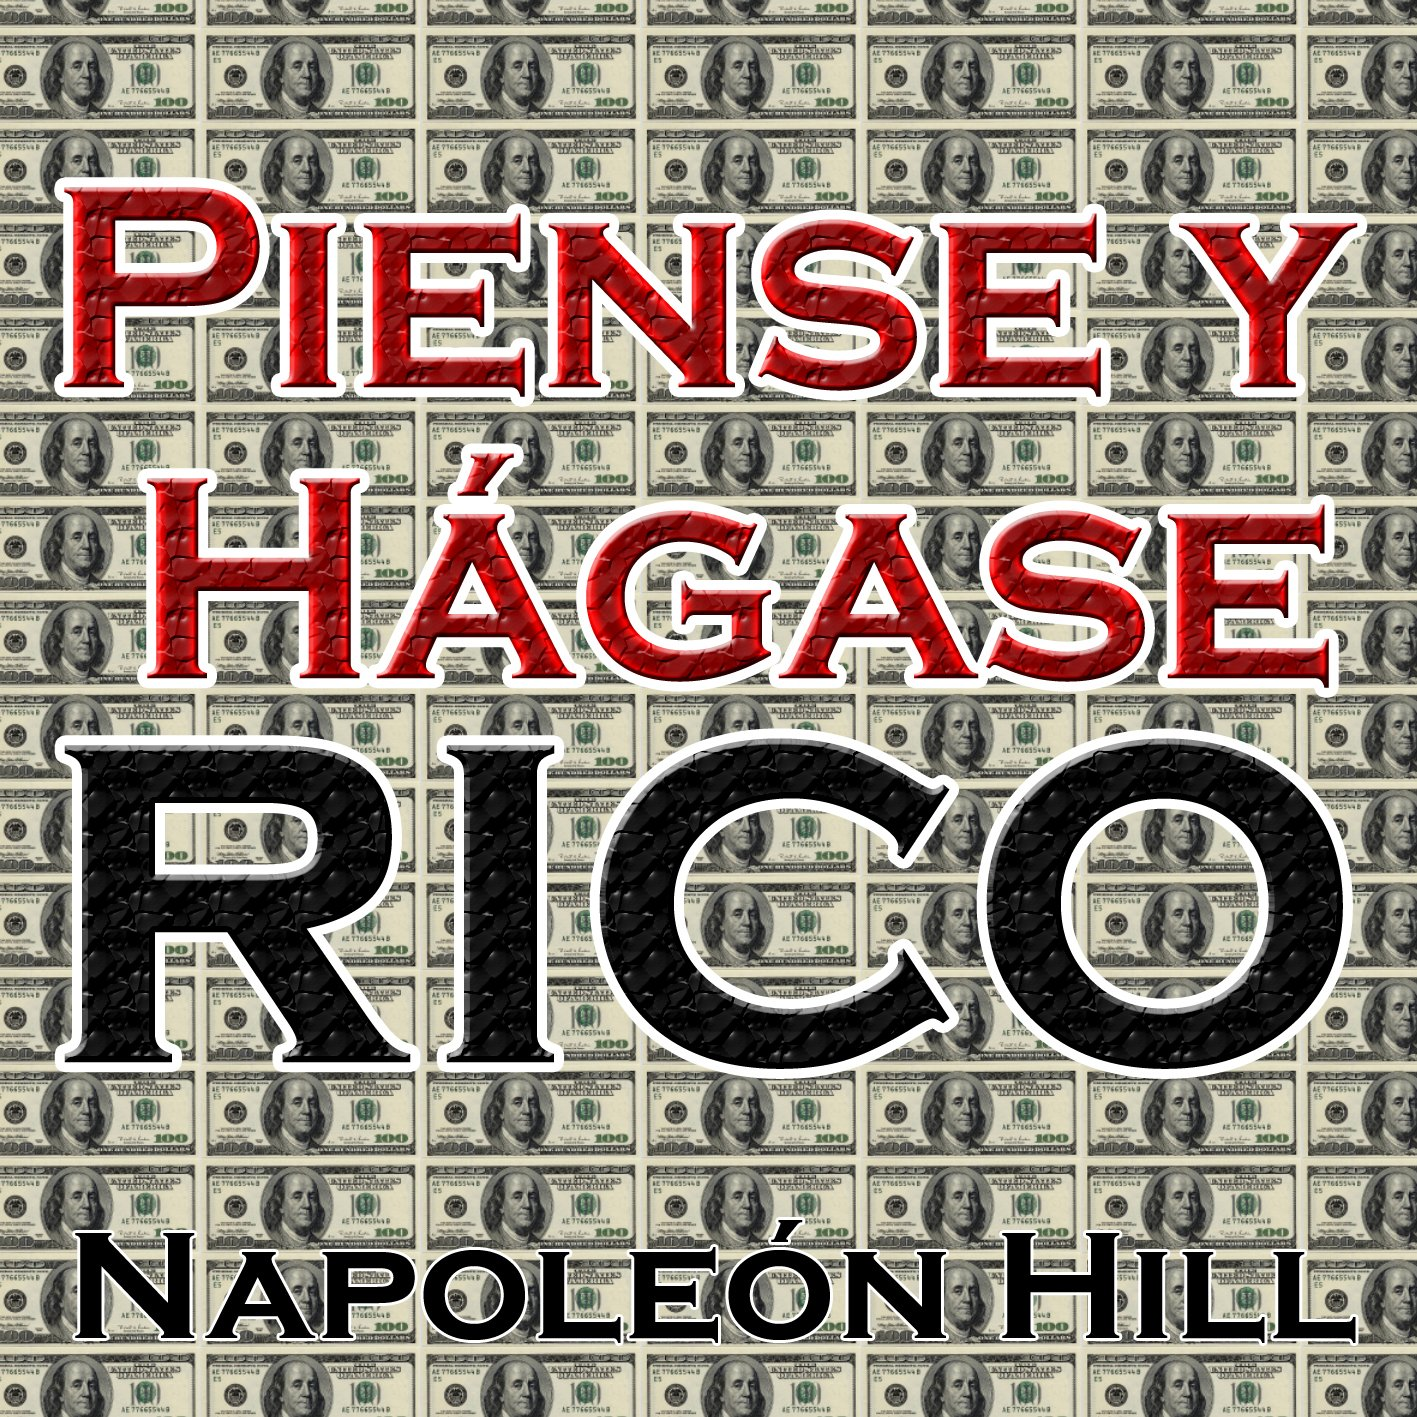 Piense y hgase rico think and grow rich spanish edition piense y hgase rico think and grow rich spanish edition napoleon hill marcelo russo 9789562910323 amazon books fandeluxe Choice Image